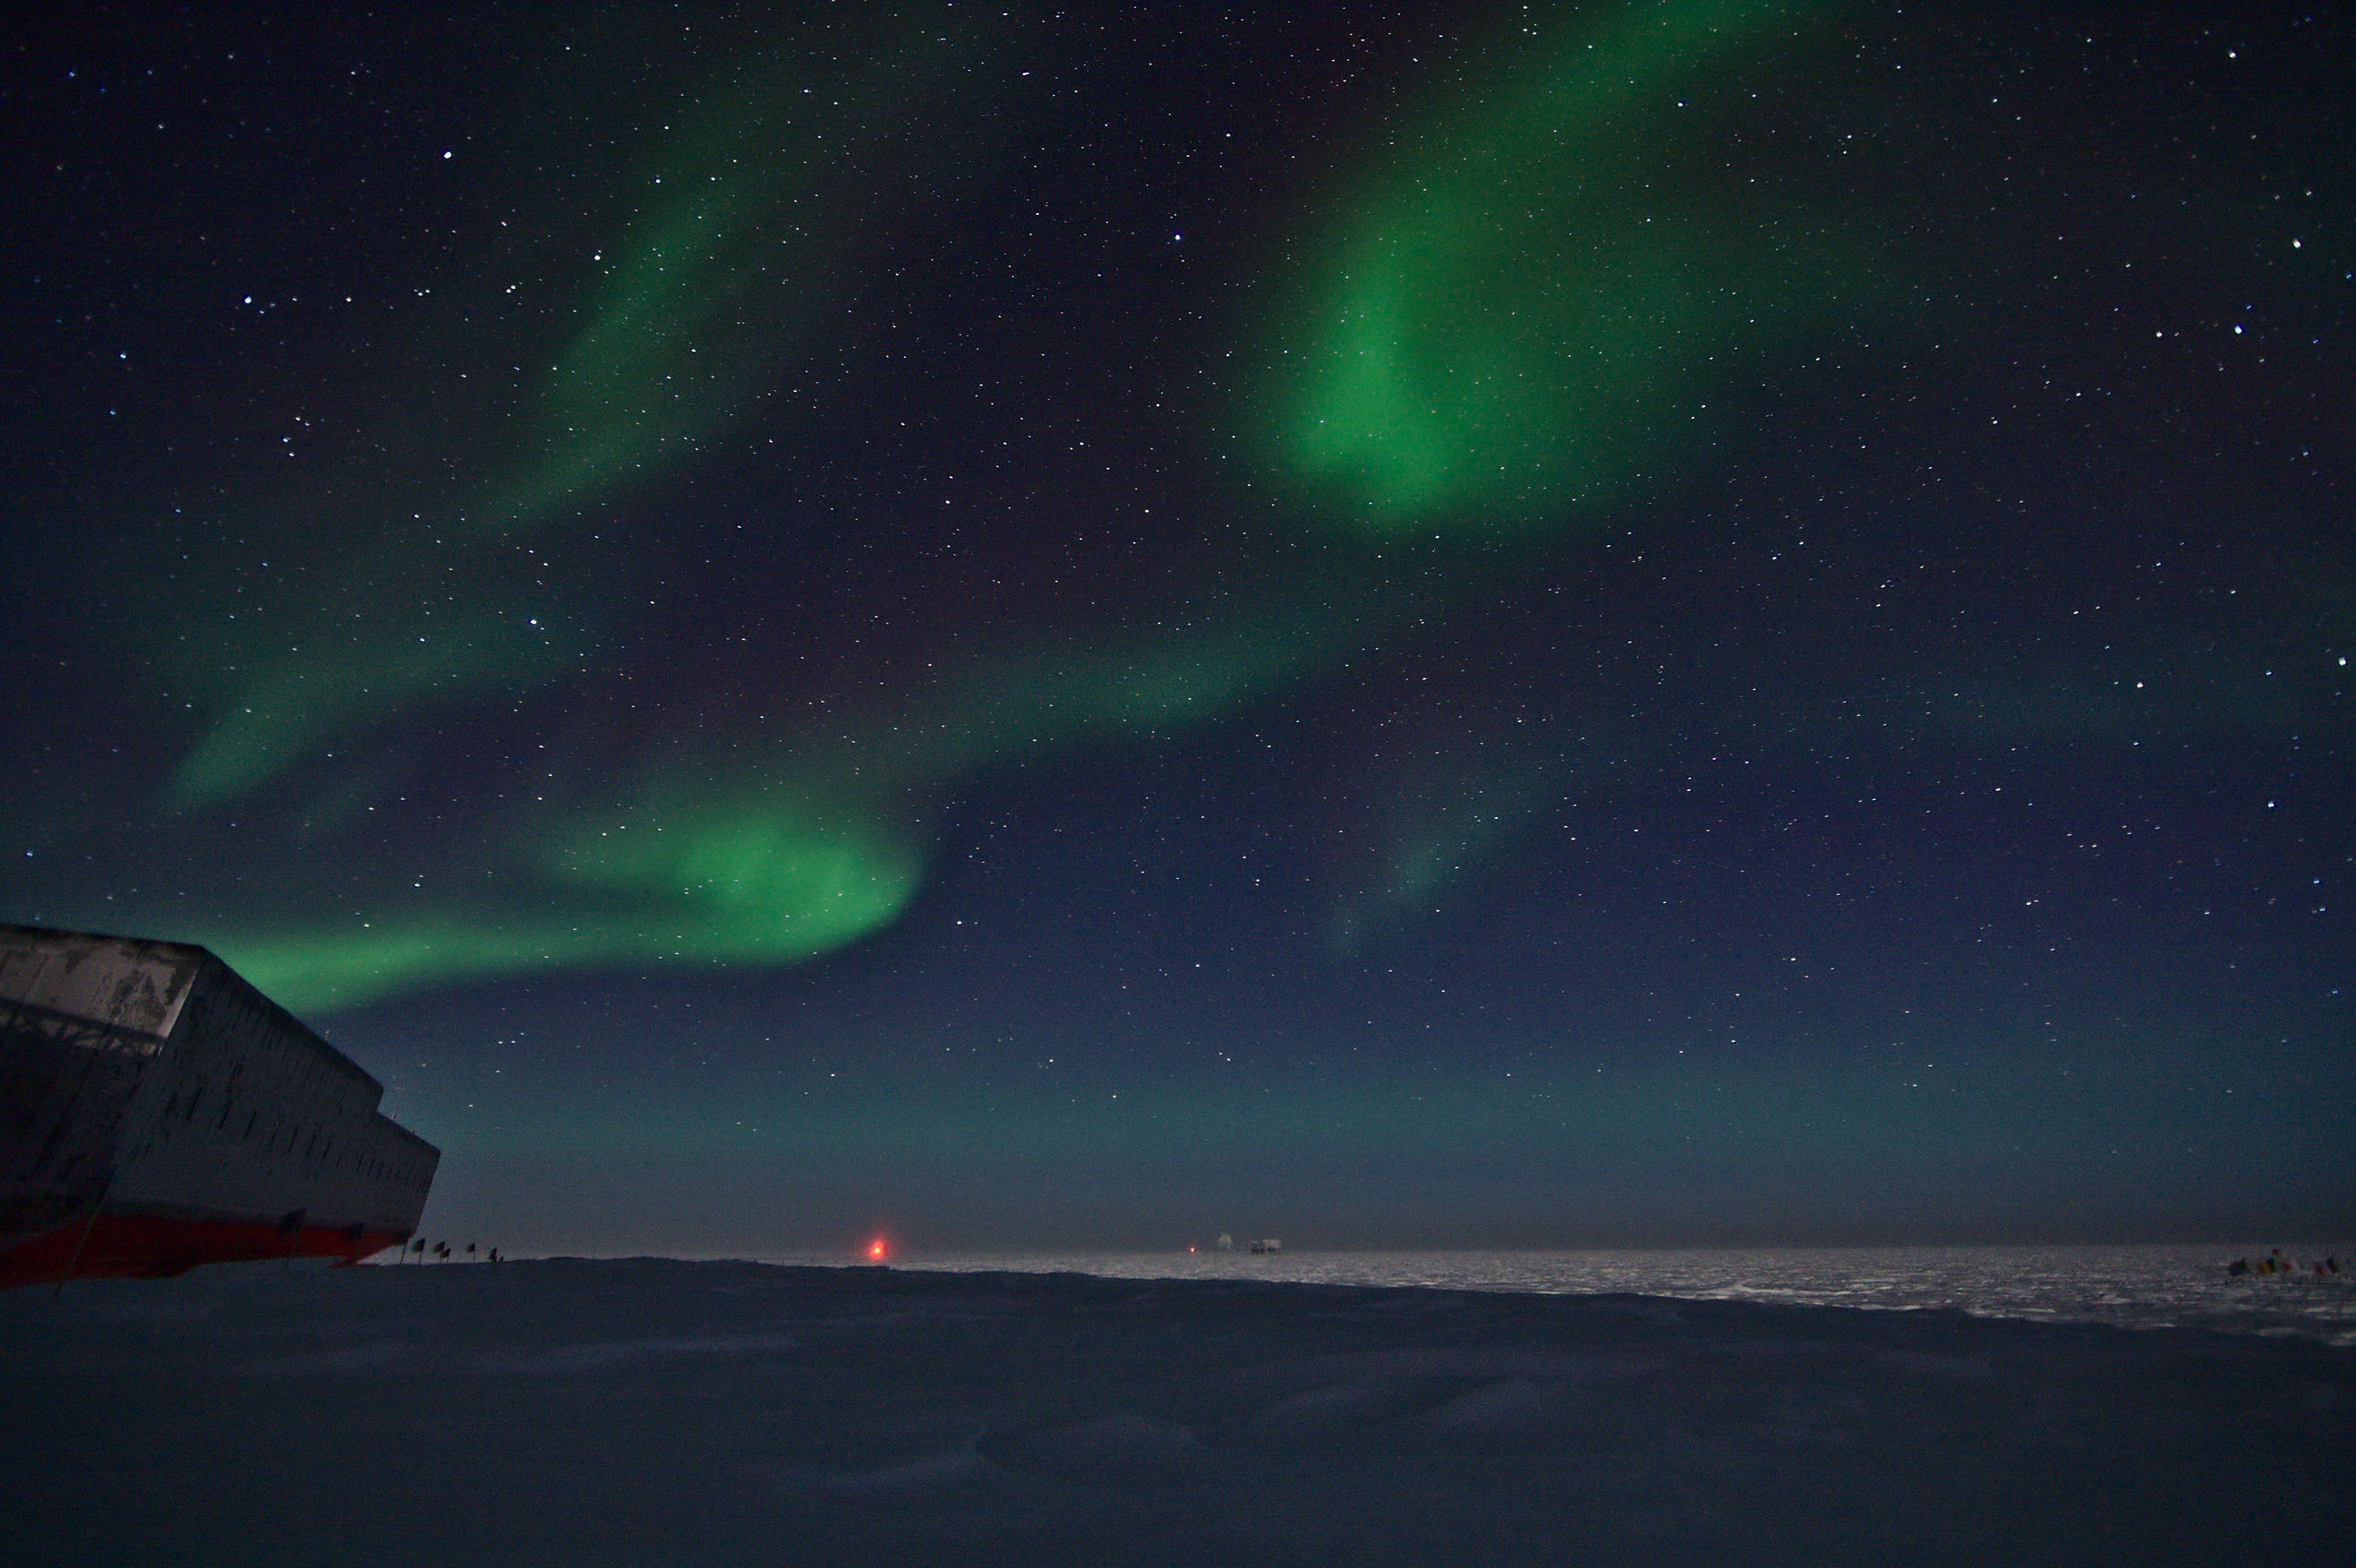 The frozen landscape behind the station illuminated by moon light and auroras